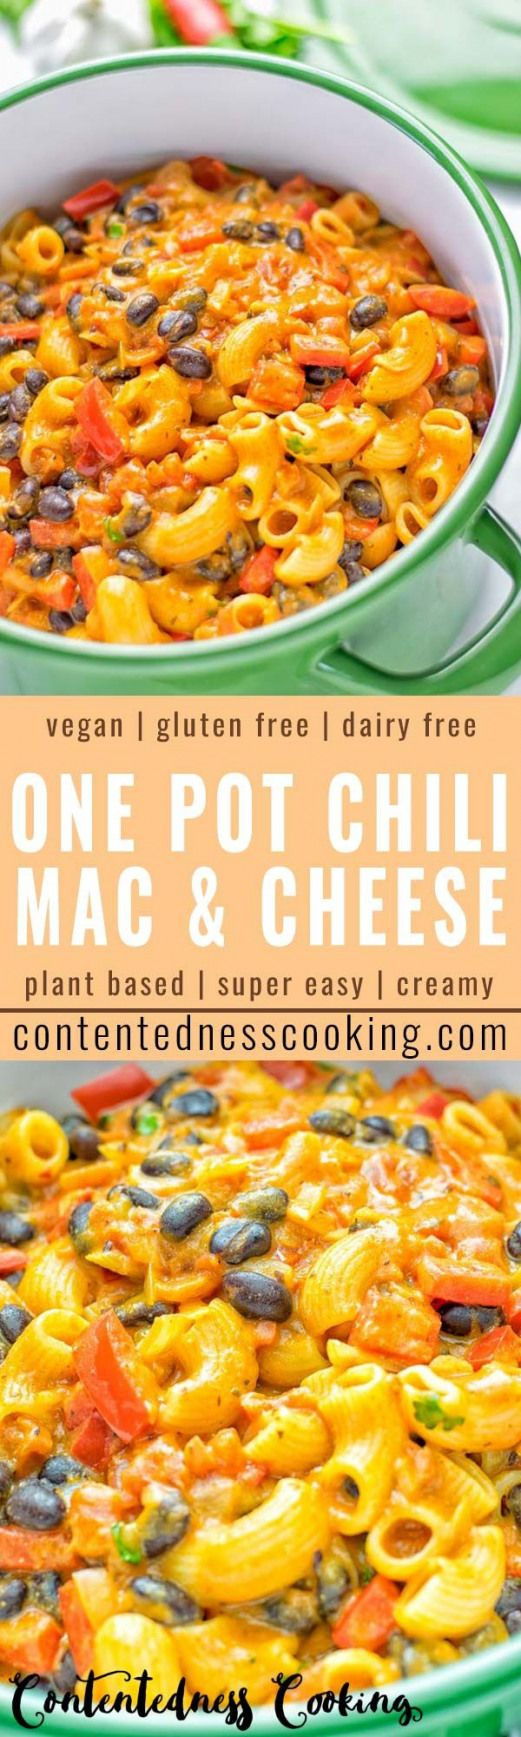 Your favorite recipe source for healthy food [Paleo, Vegan, Gluten free] This One Pot Chili Mac & Cheese is super easy to make. Its insanely creamy vegan gluten free and ready in 20 minutes on the table. If youre looking for easy one pot meals that the whole family will love try it now and learn how easy meal preparation dinner lunch work lunches and more can be.